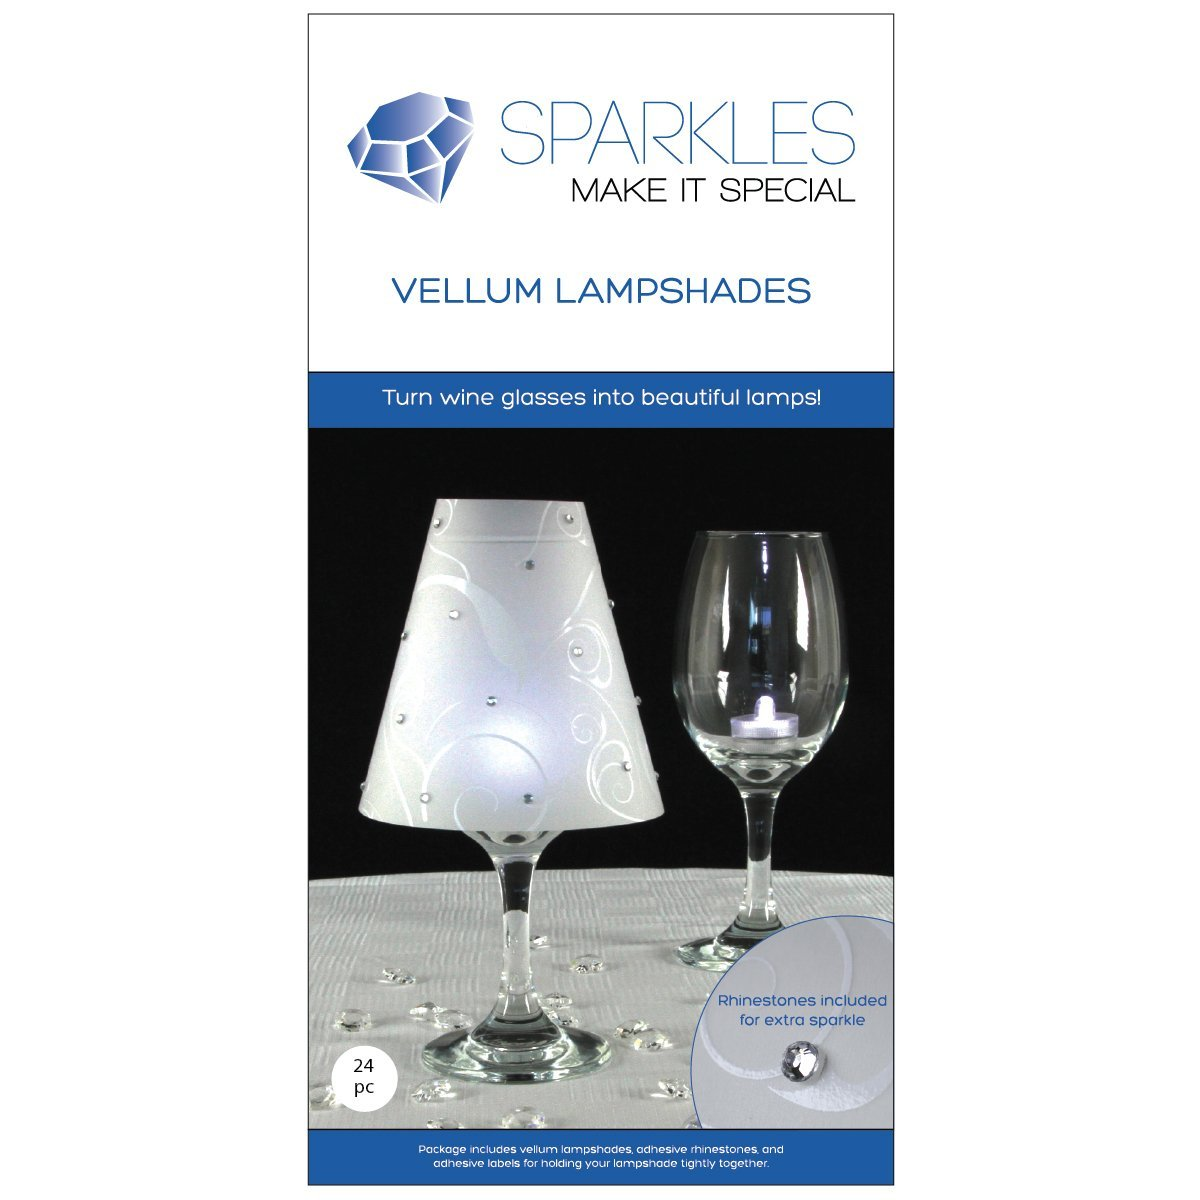 Sparkles Make It Special 24 pc Wine Glass Lamp Shades with Rhinestones - Wedding Party Table Centerpiece Decoration - White Vellum Swirl Print